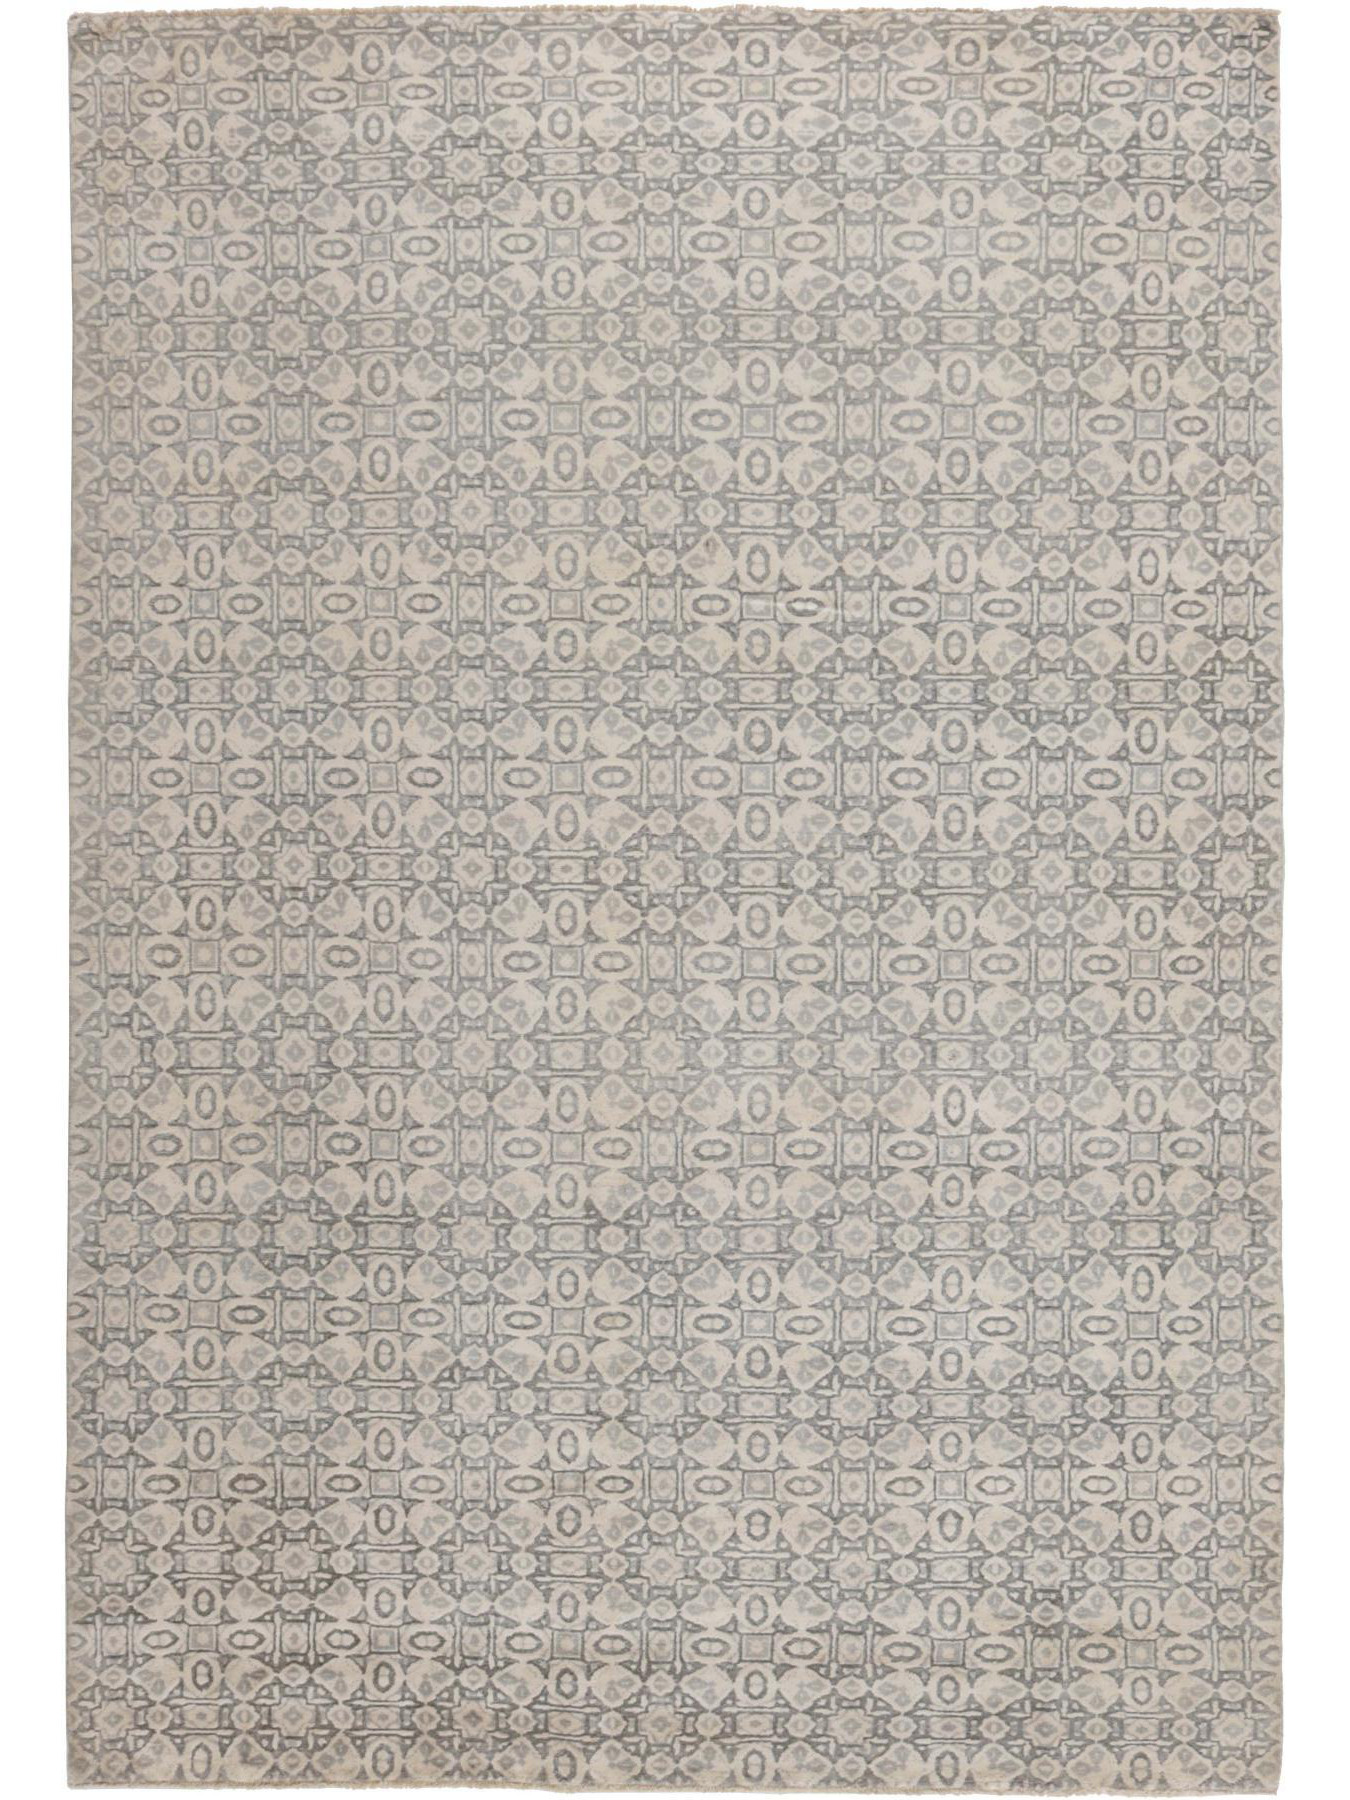 Luxury carpets - Damask-AL-328 B-91/HB-101